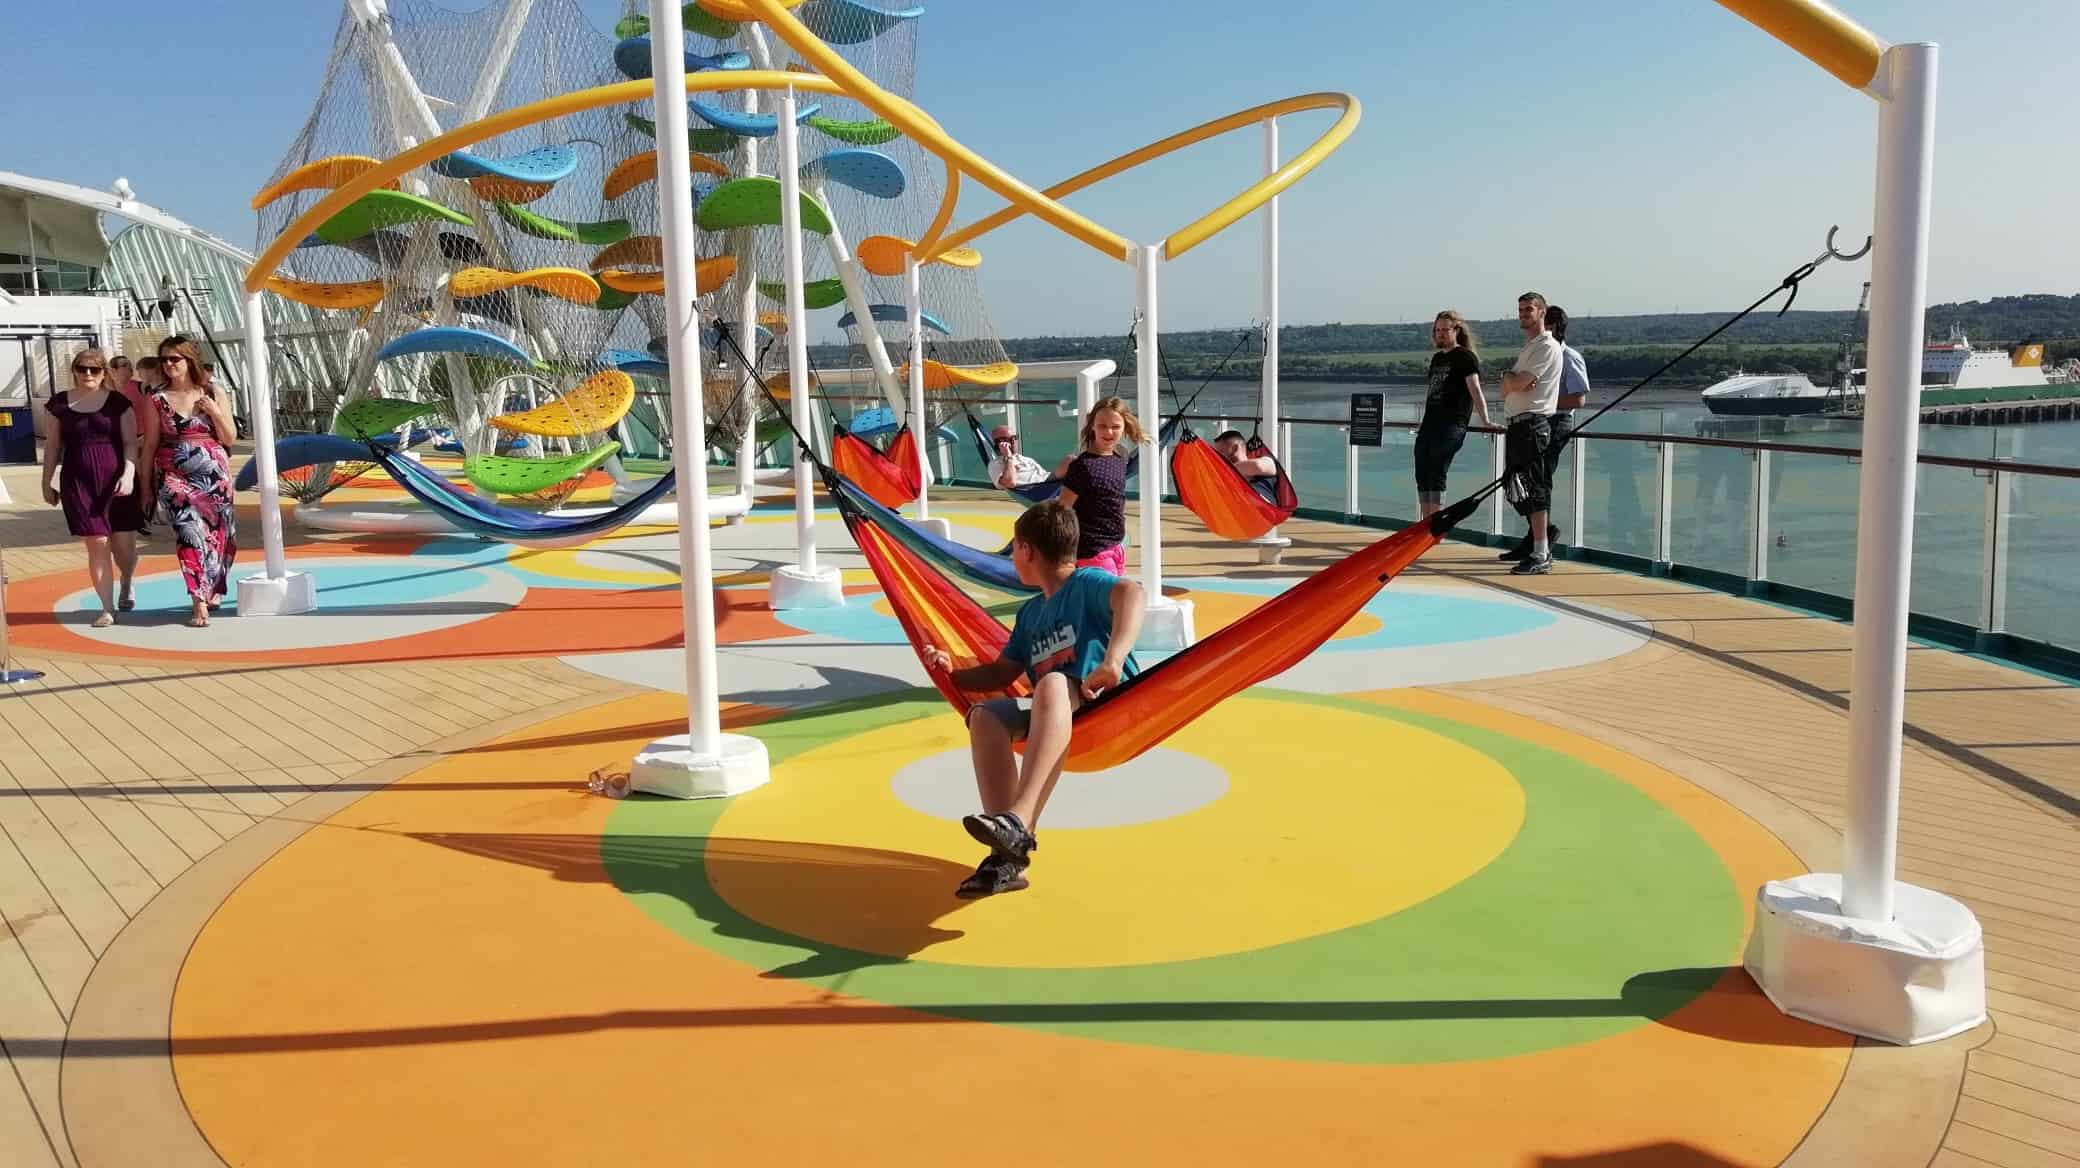 Family Travel Blogs UK - on Royal Caribbean's Independence of the Seas